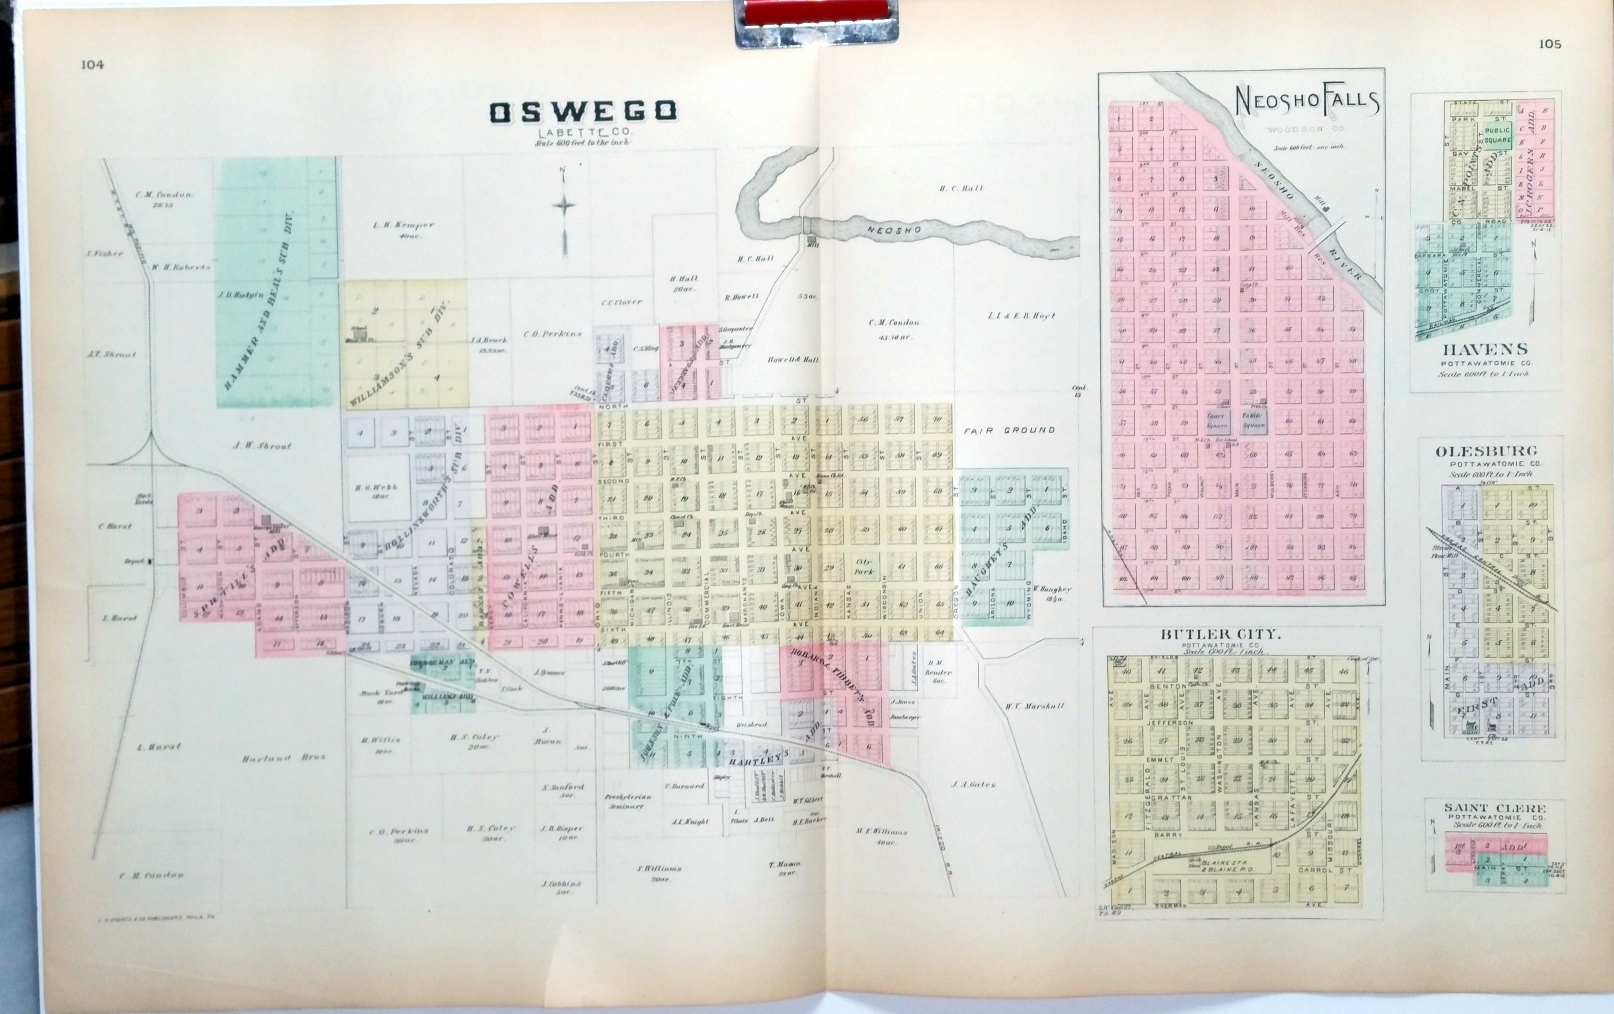 Image for [Map] Oswego of Labette County, Kansas, with Neosho Falls of Woodson Co., And Havens, Butler City, Olesburg, & Saint Clere of Pottawatomie Co. [backed  with] Woodson Co., And Yates Center & Toronto of Woodson Co.